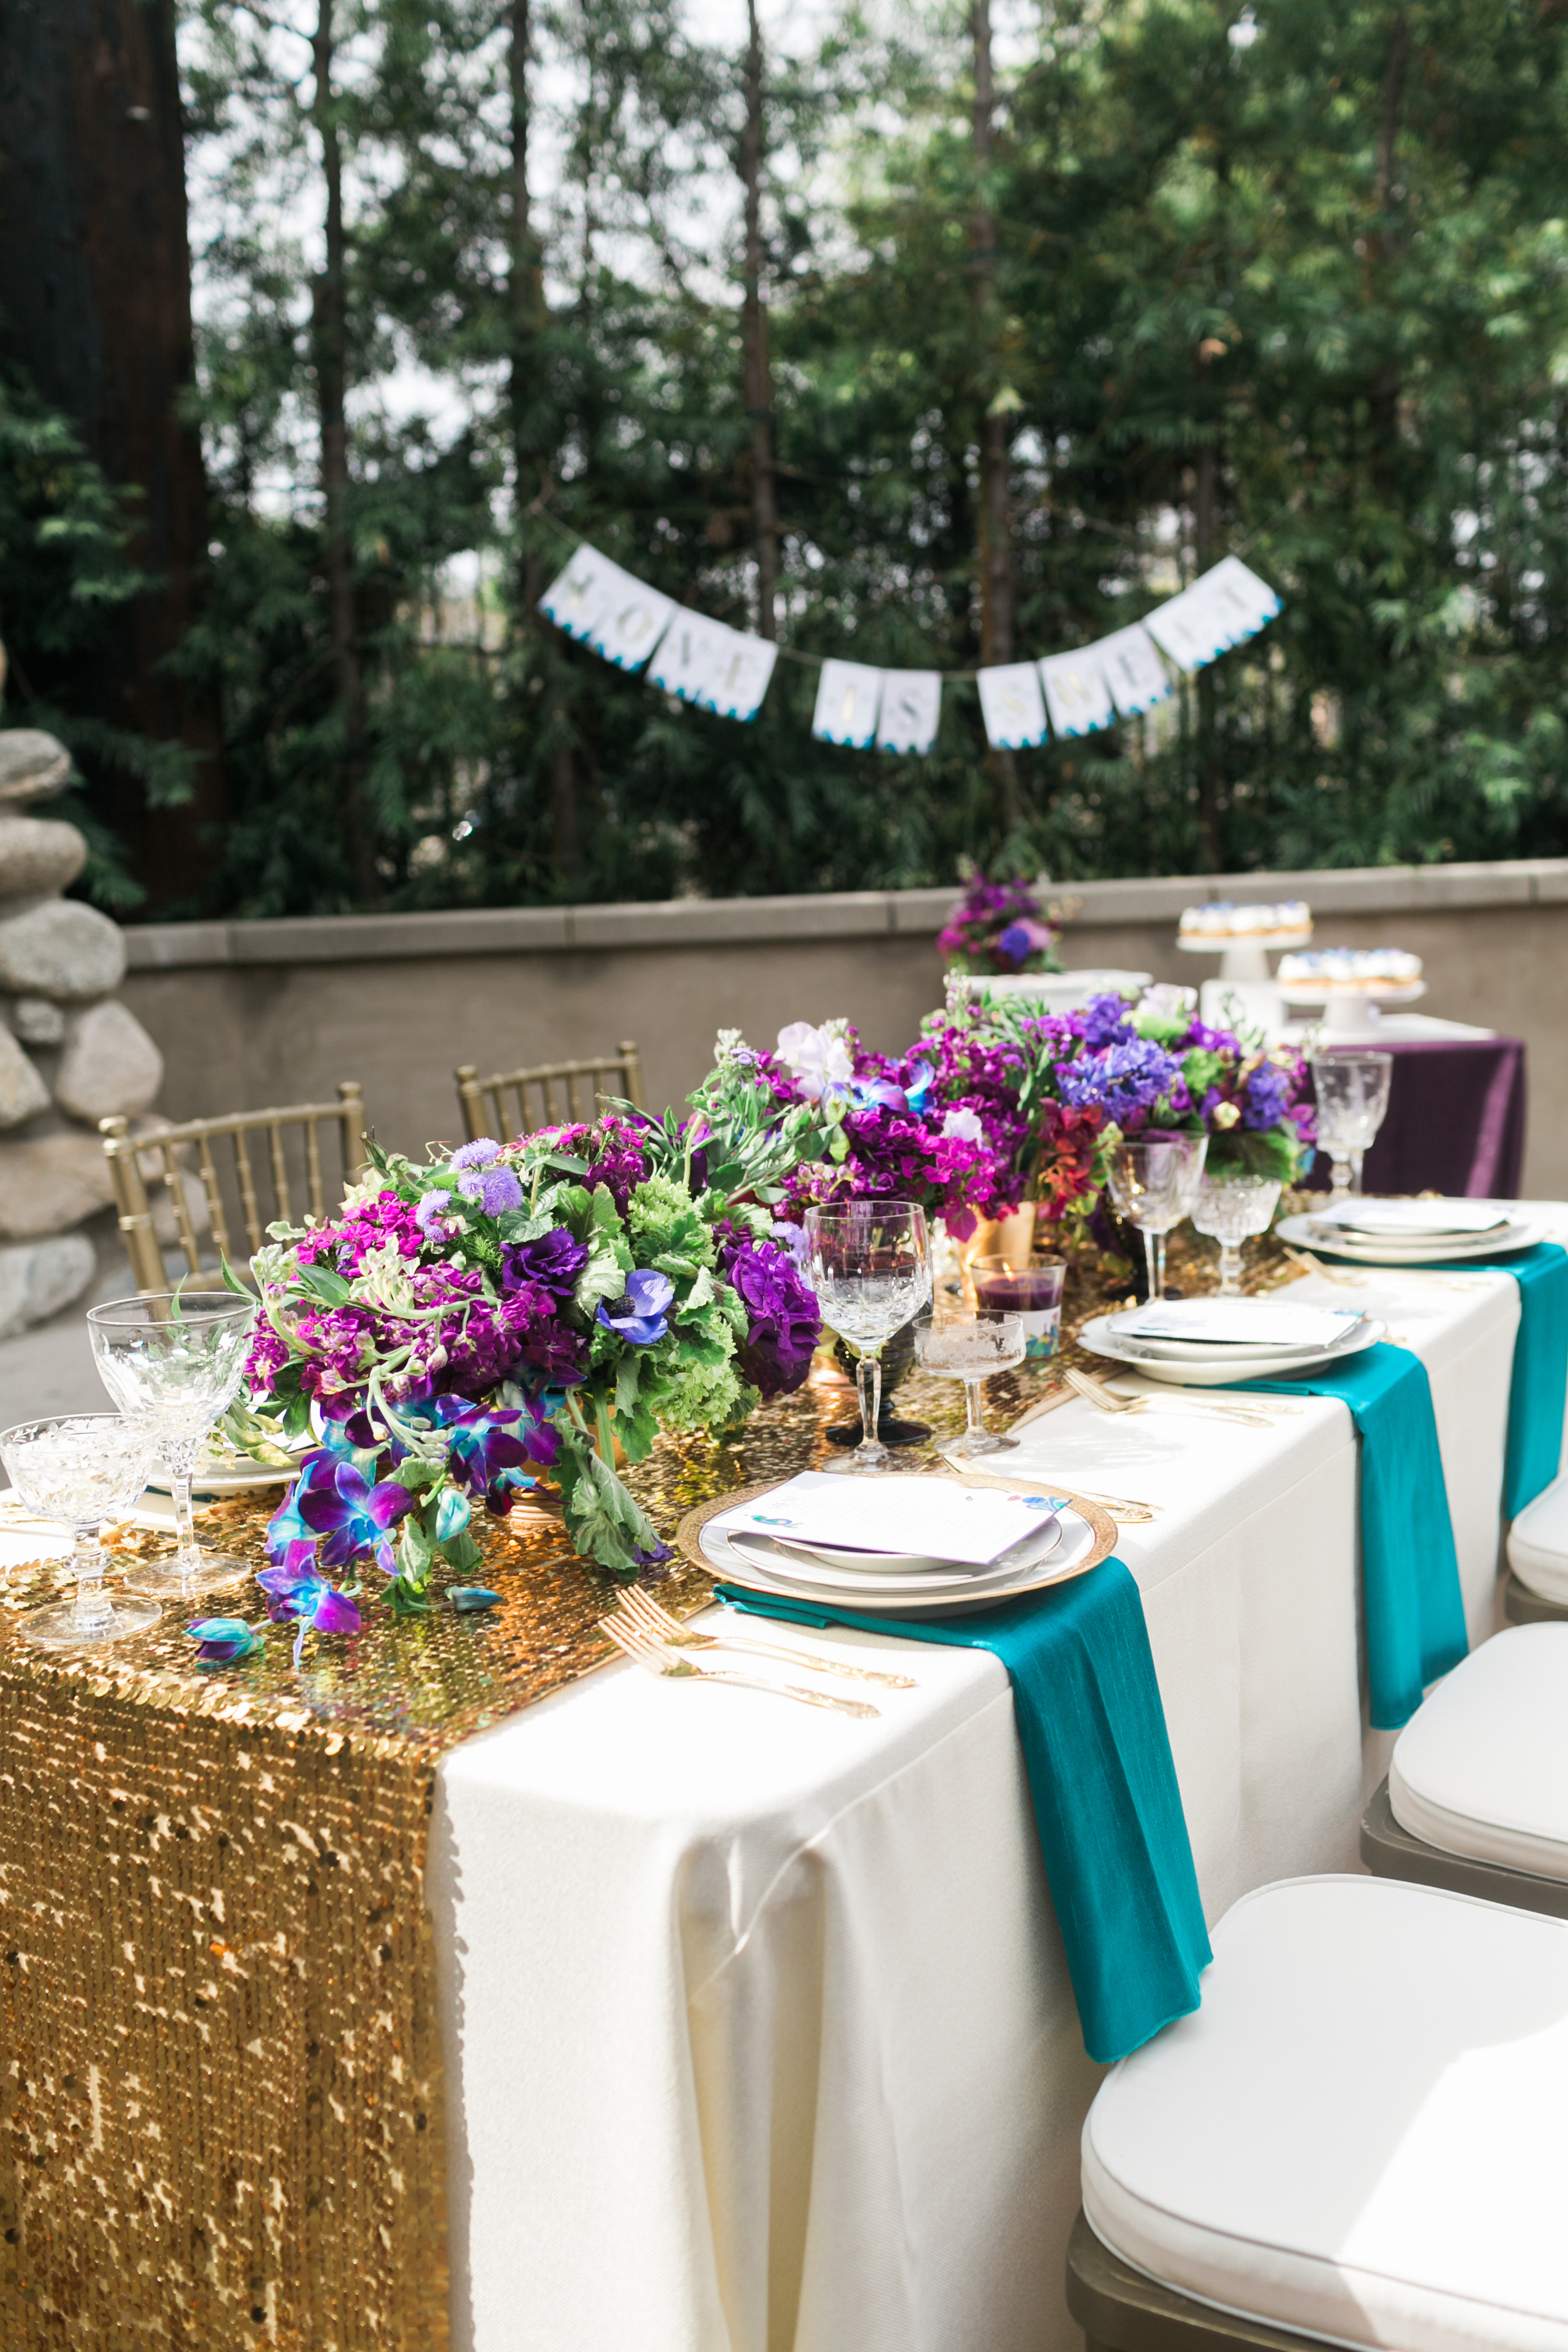 skyboxeventproductions.com   Peacock Inspired Engagement Party Ideas   Skybox Event Productions Wedding and Event Planning   Sarina Love Photography   Los Angeles and Southern California Party Design